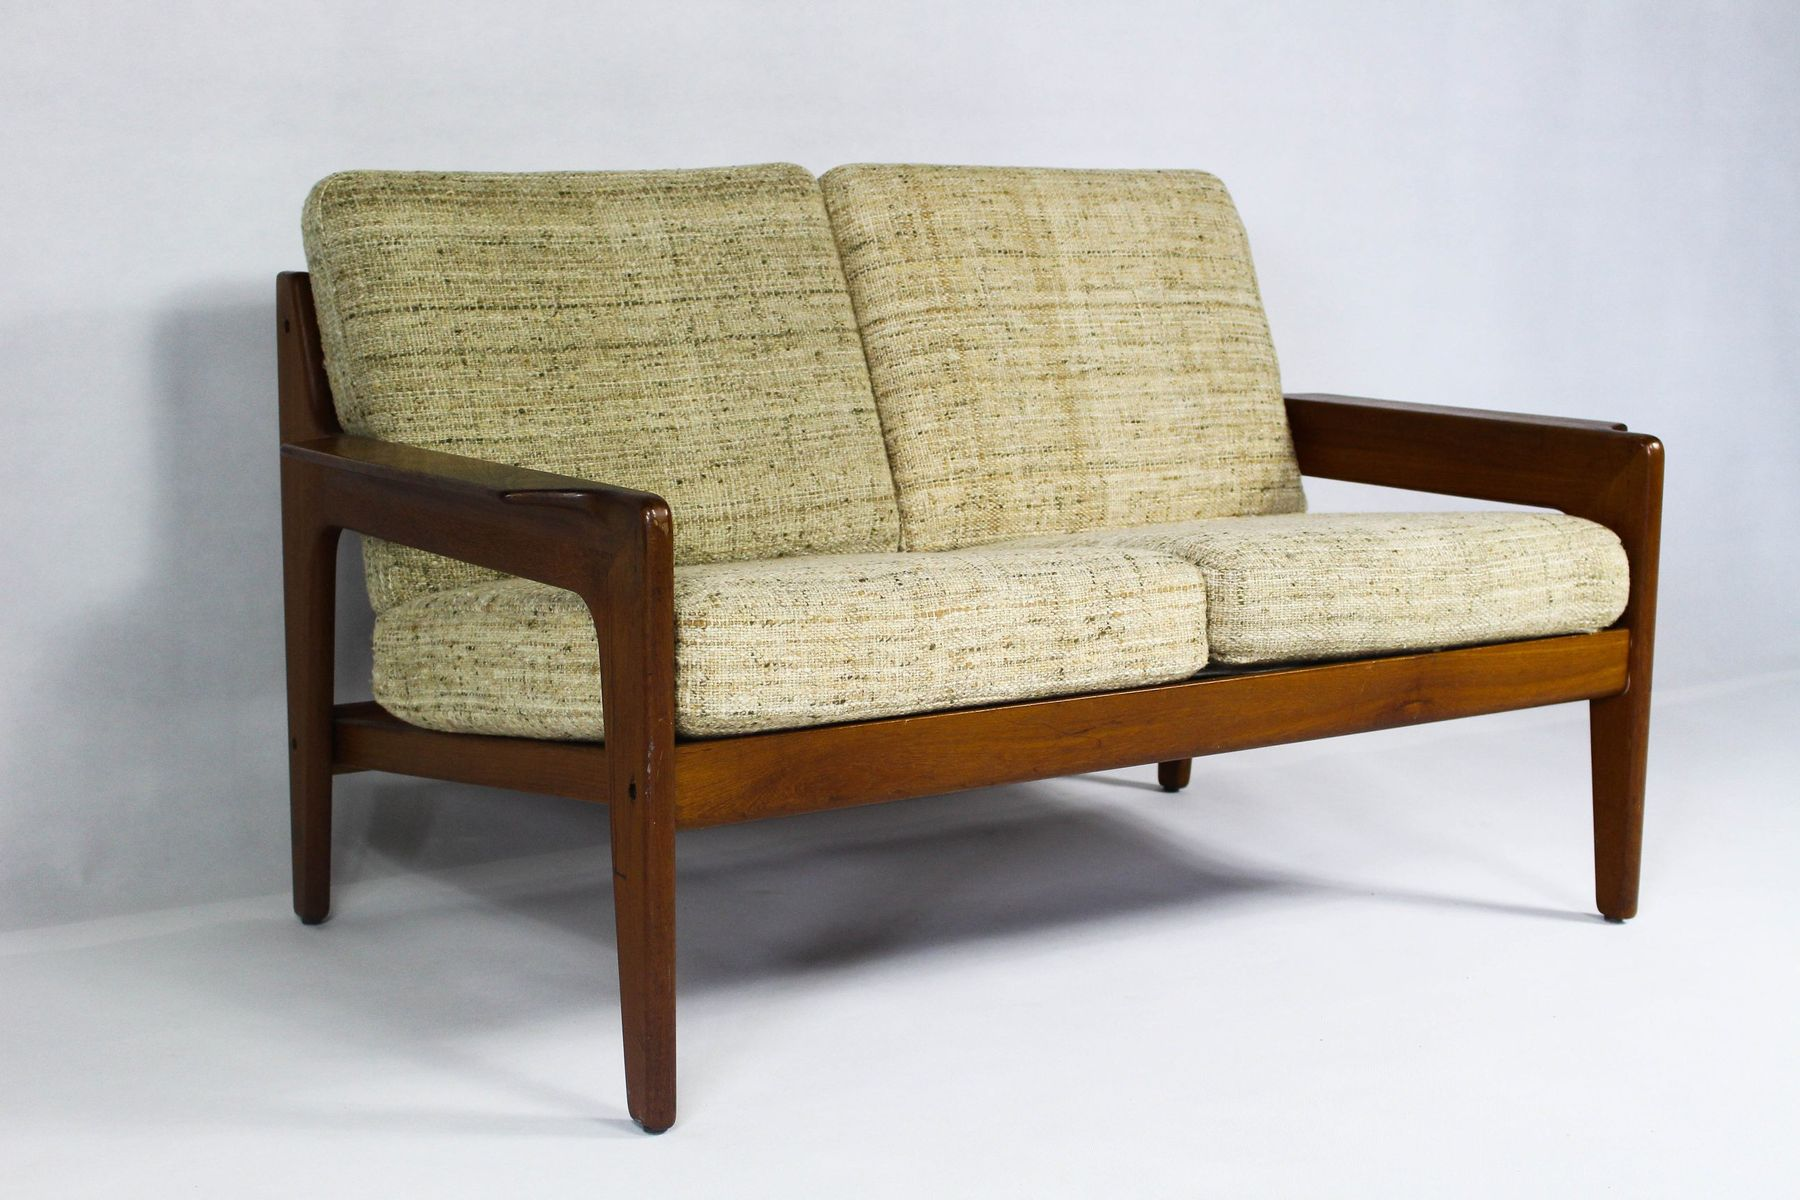 vintage danish beige teak sofa by arne wahl iversen for komfort for sale at pamono. Black Bedroom Furniture Sets. Home Design Ideas